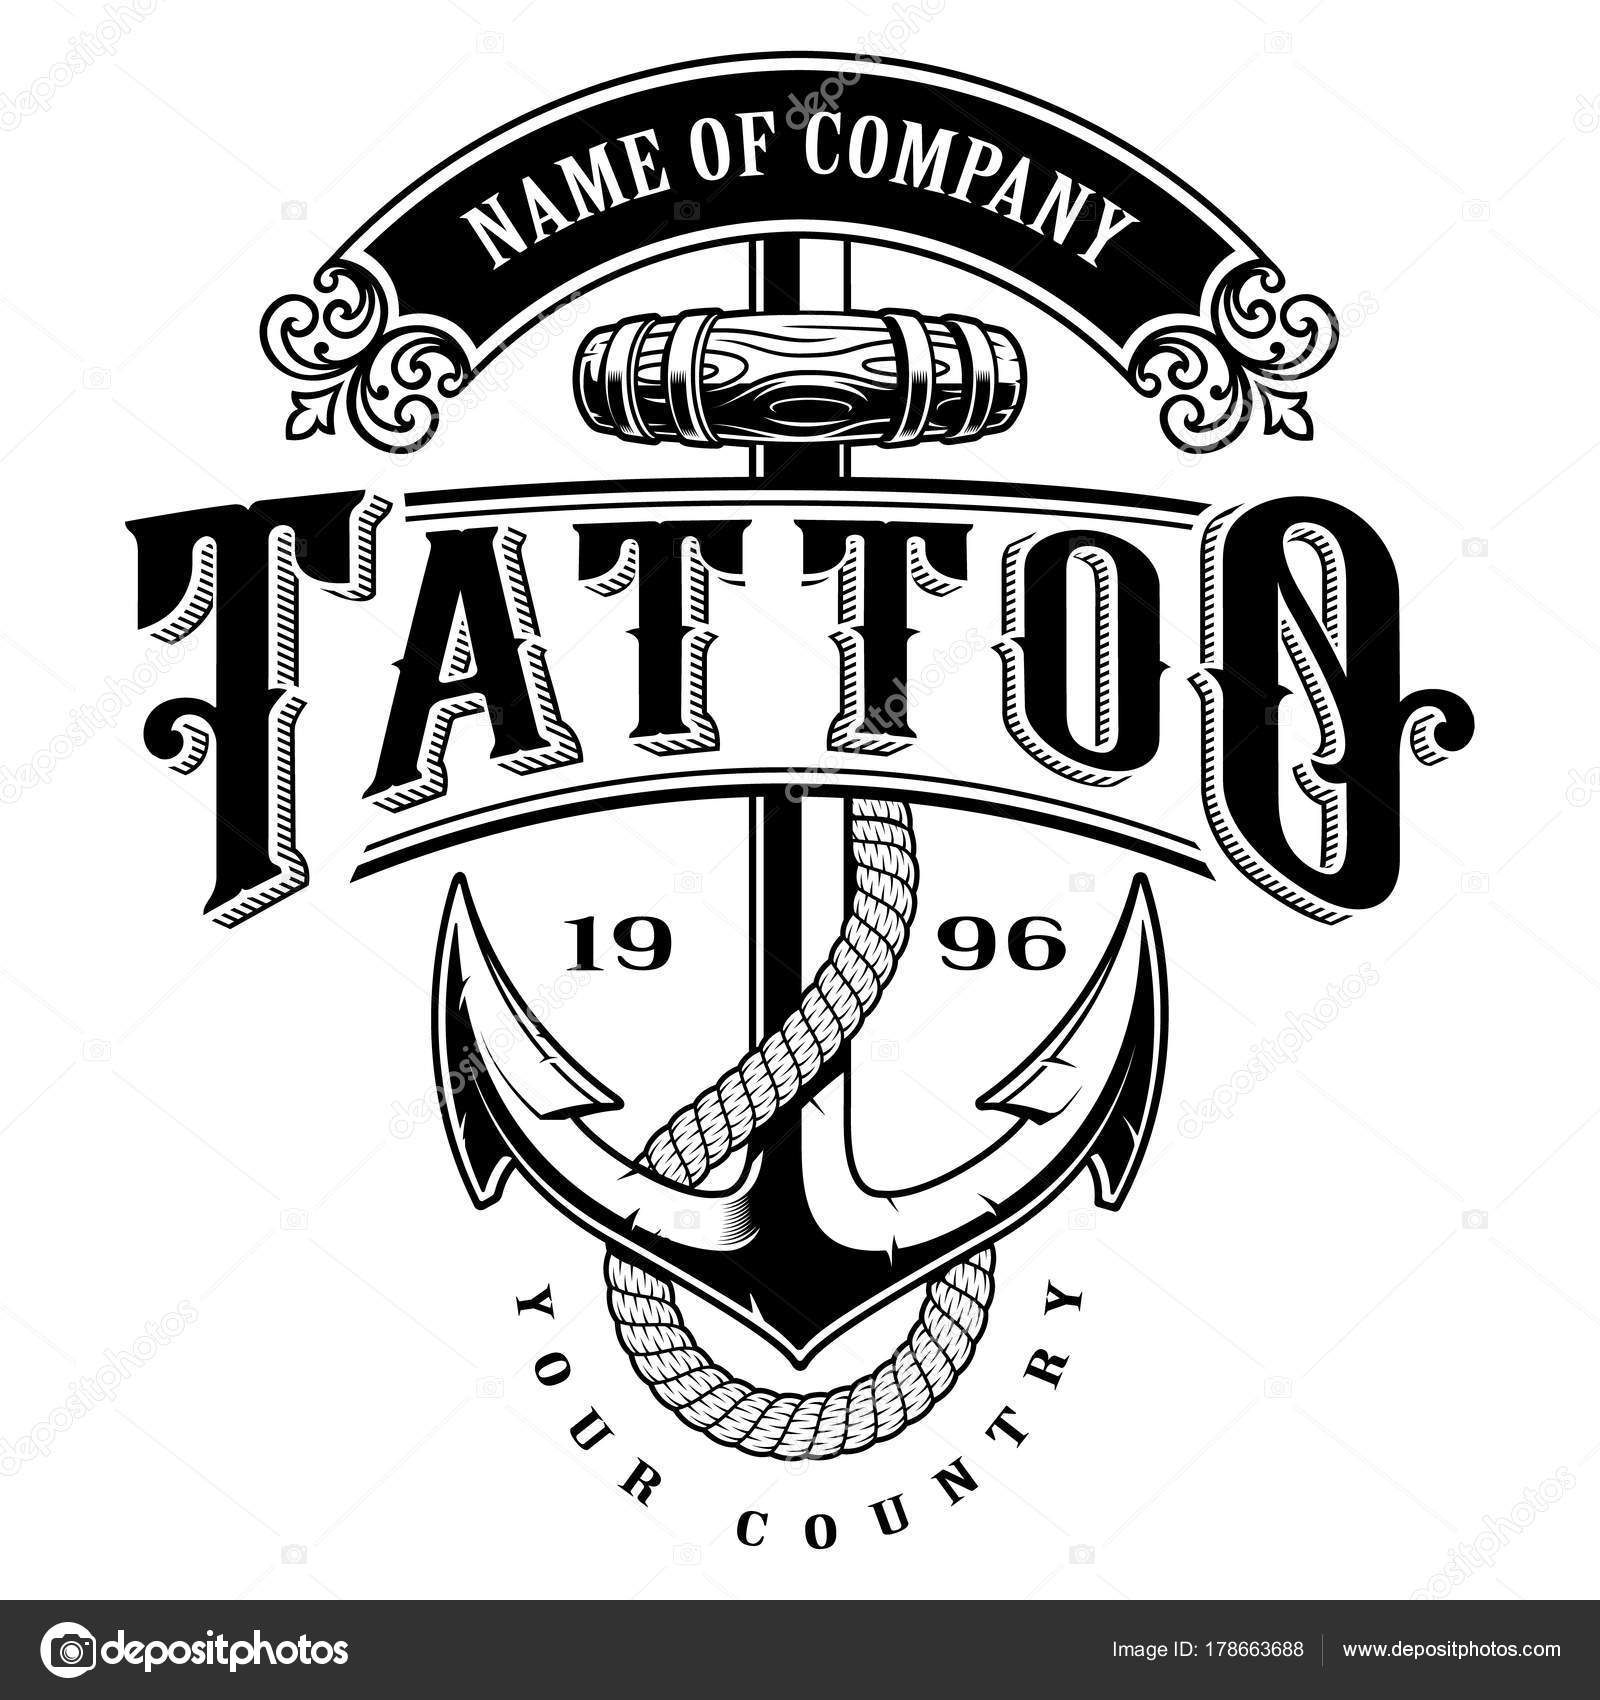 Tattoo Lettering Illustration With Anchor Logo Template Design Shirt Graphic Text Is On The Separate Layer VERSION FOR WHITE BACKGROUND Vector By